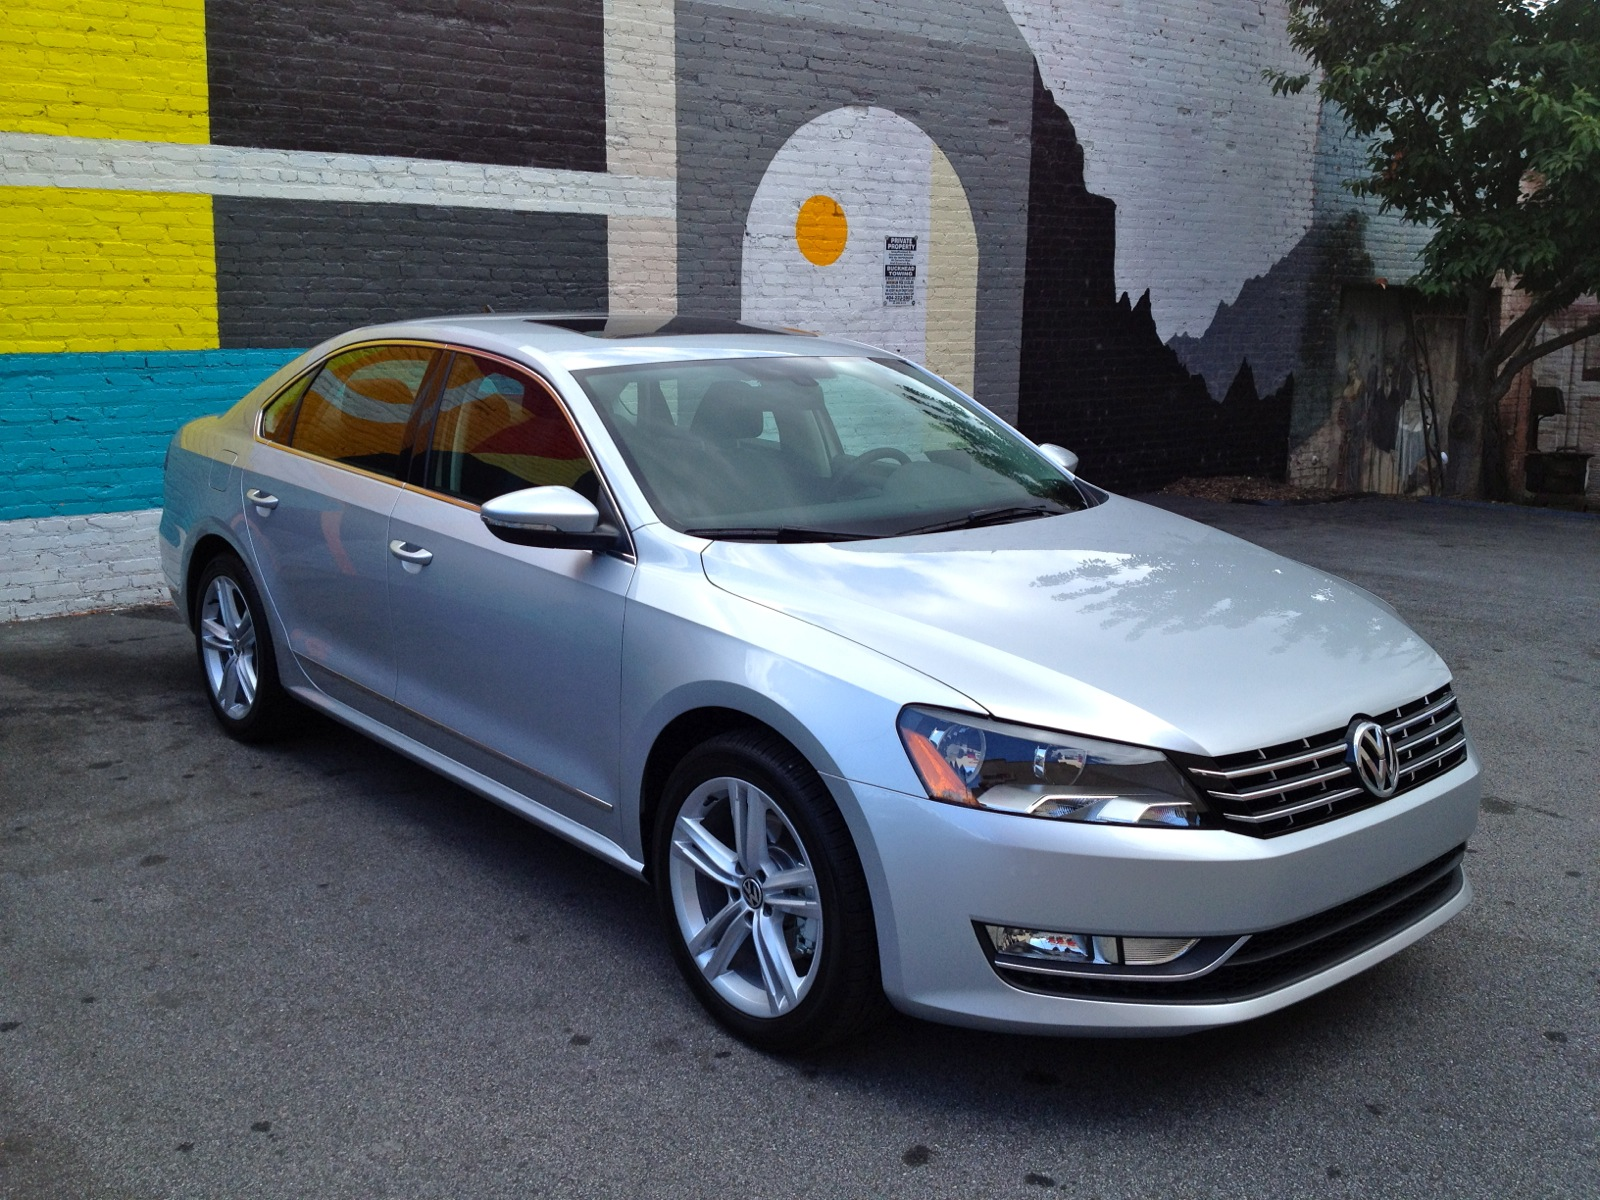 2012 vw passat six month road test what happens when nothing happens rh thecarconnection com 2013 Passat Interiors 2013 Passat TDI AWD